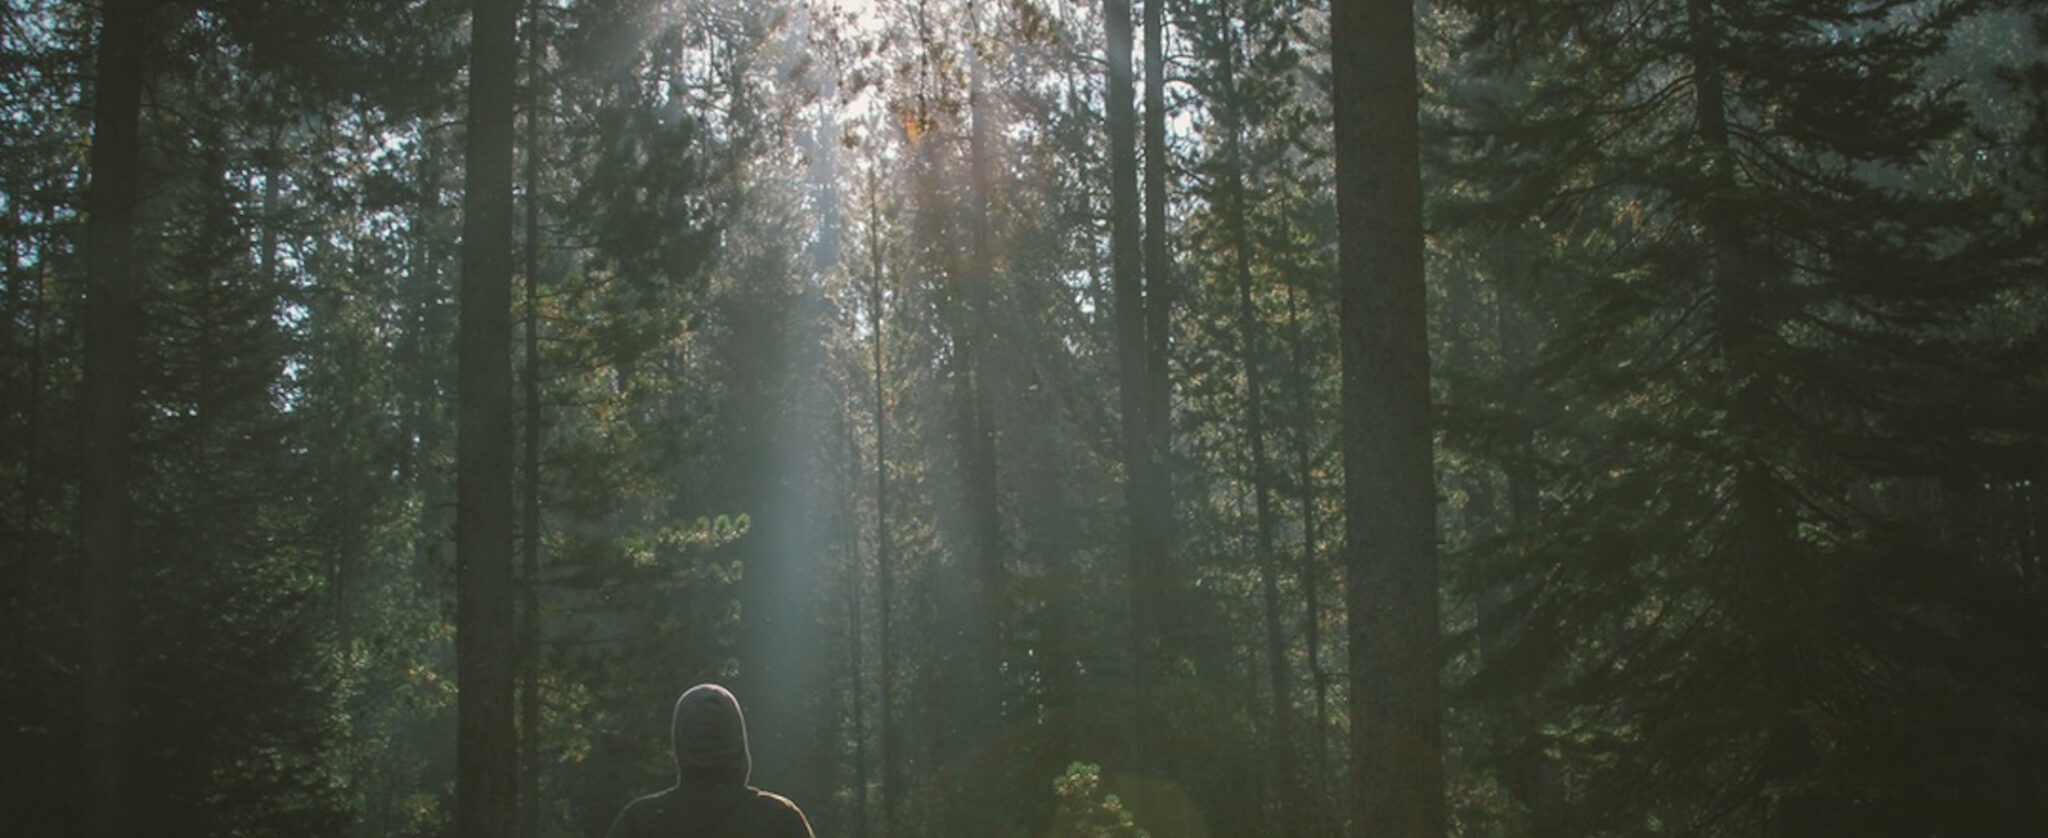 Man strolling through a deep green forest with sun shining through